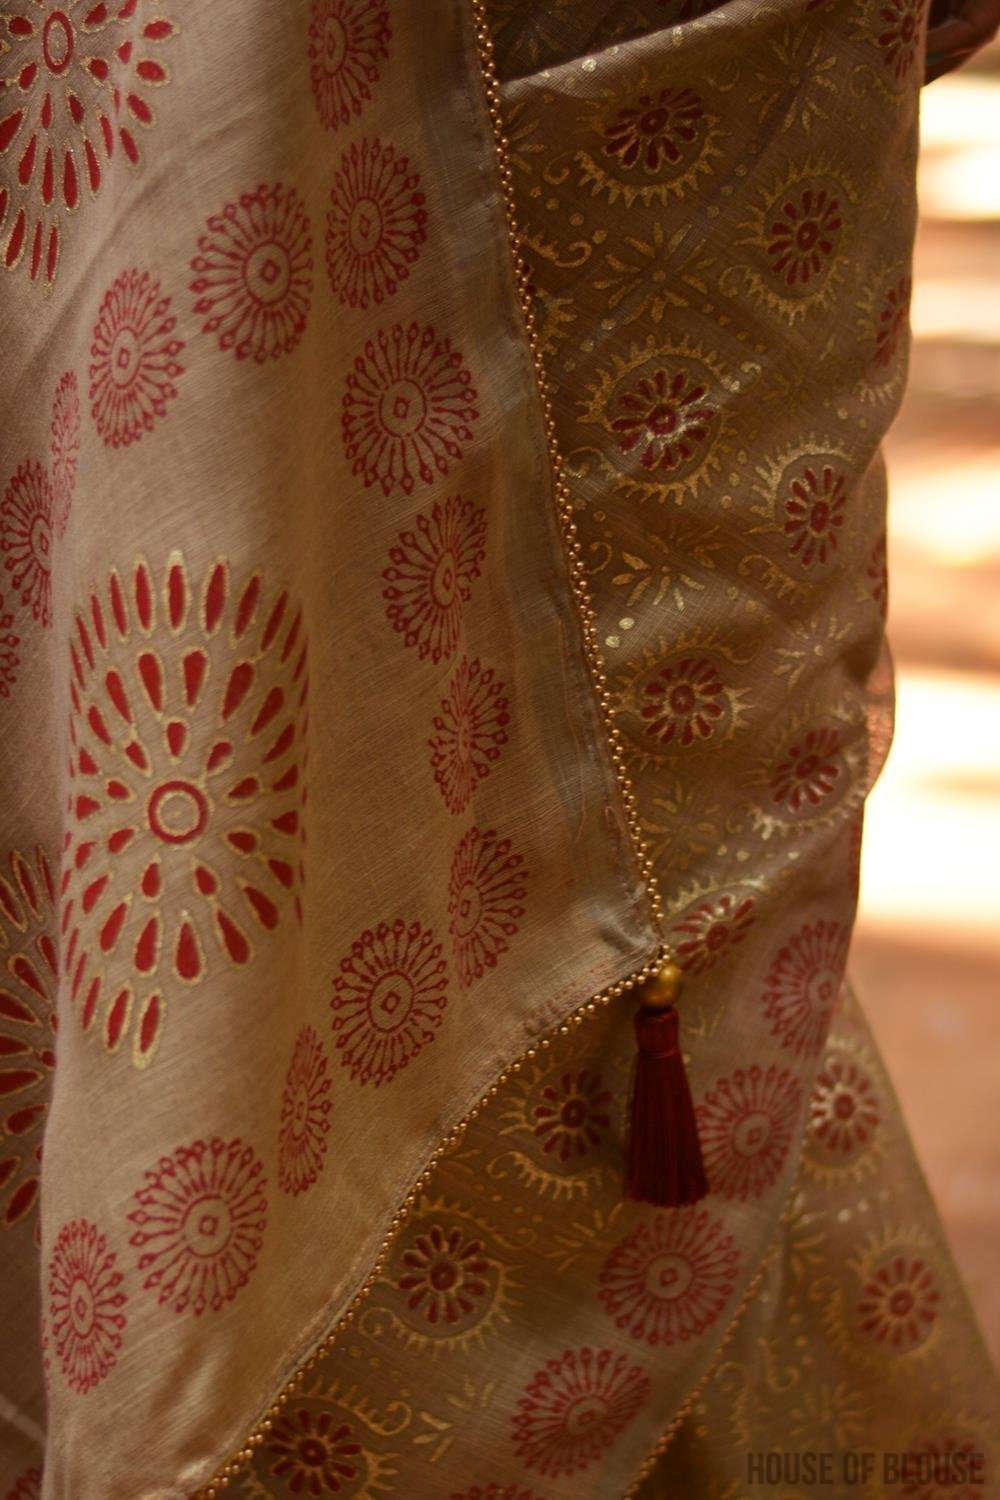 Beige soft linen saree with maroon and gold block print, tissue edging and gold bead edging - House of Blouse